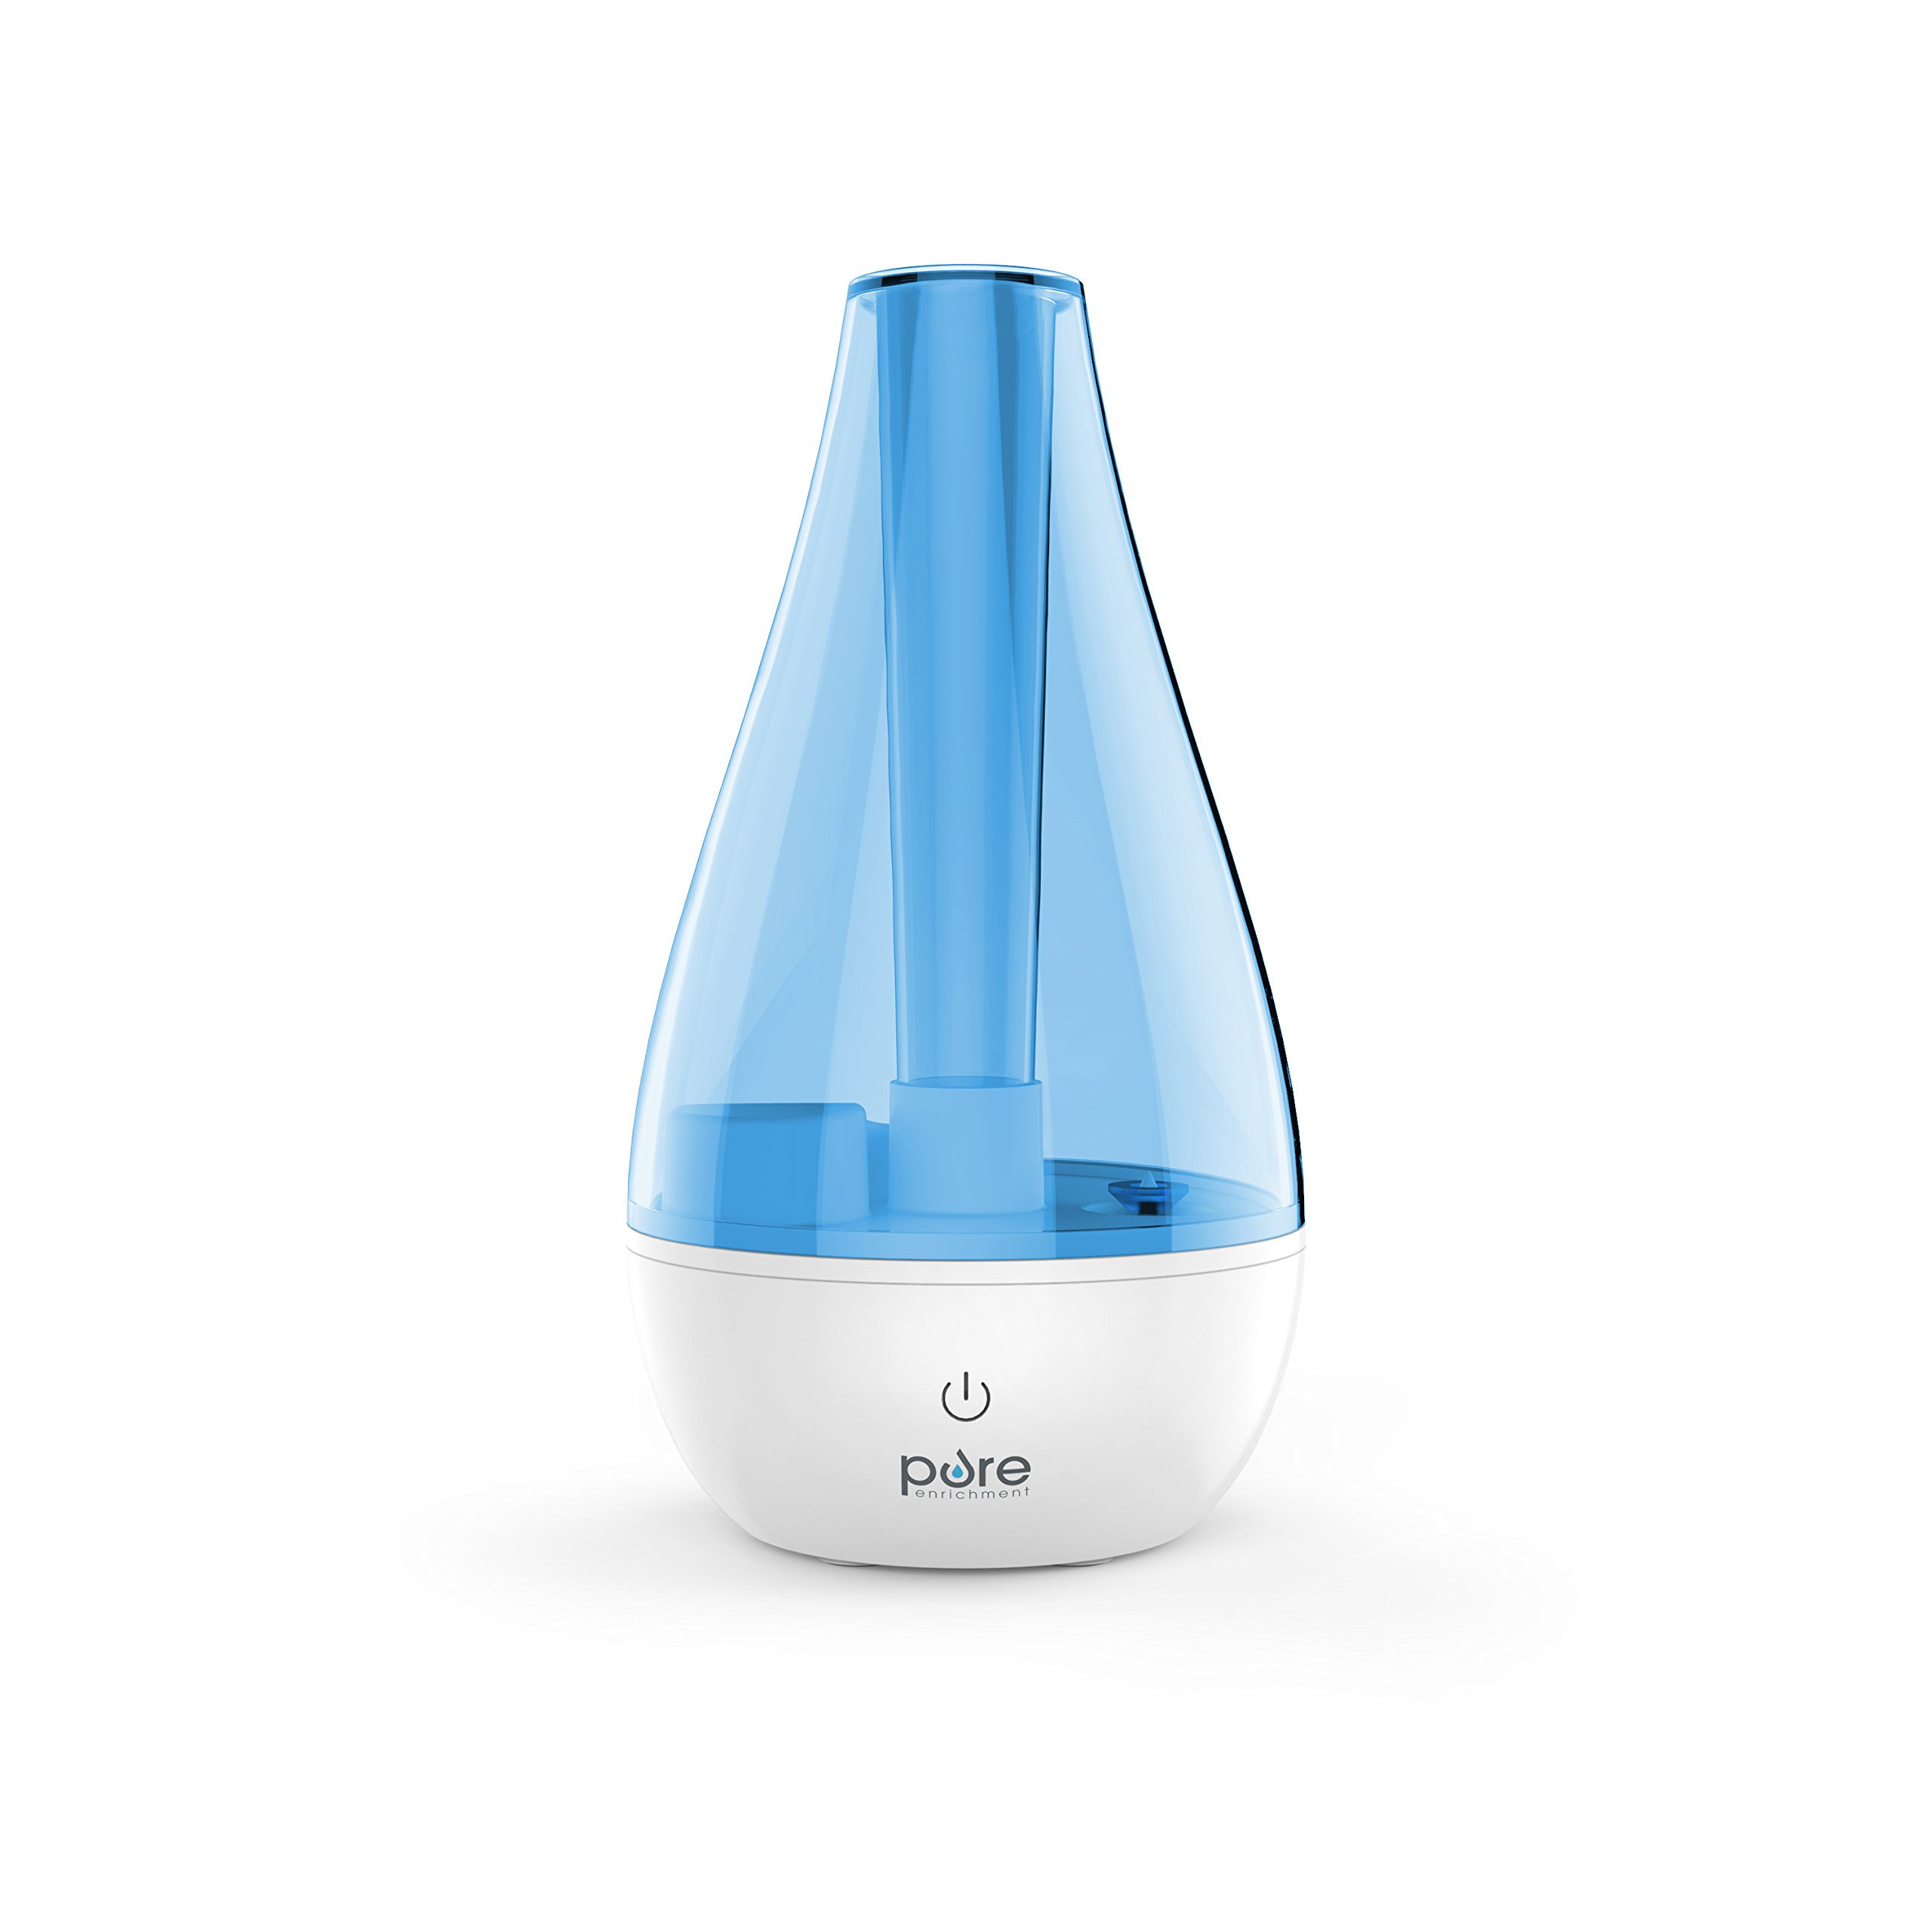 MistAire Studio Ultrasonic Cool Mist Humidifier for Small Rooms – Portable Humidifying Unit Ideal for Travel with High & Low Mist Settings and Optional Night Light by Pure Enrichment (Image #1)